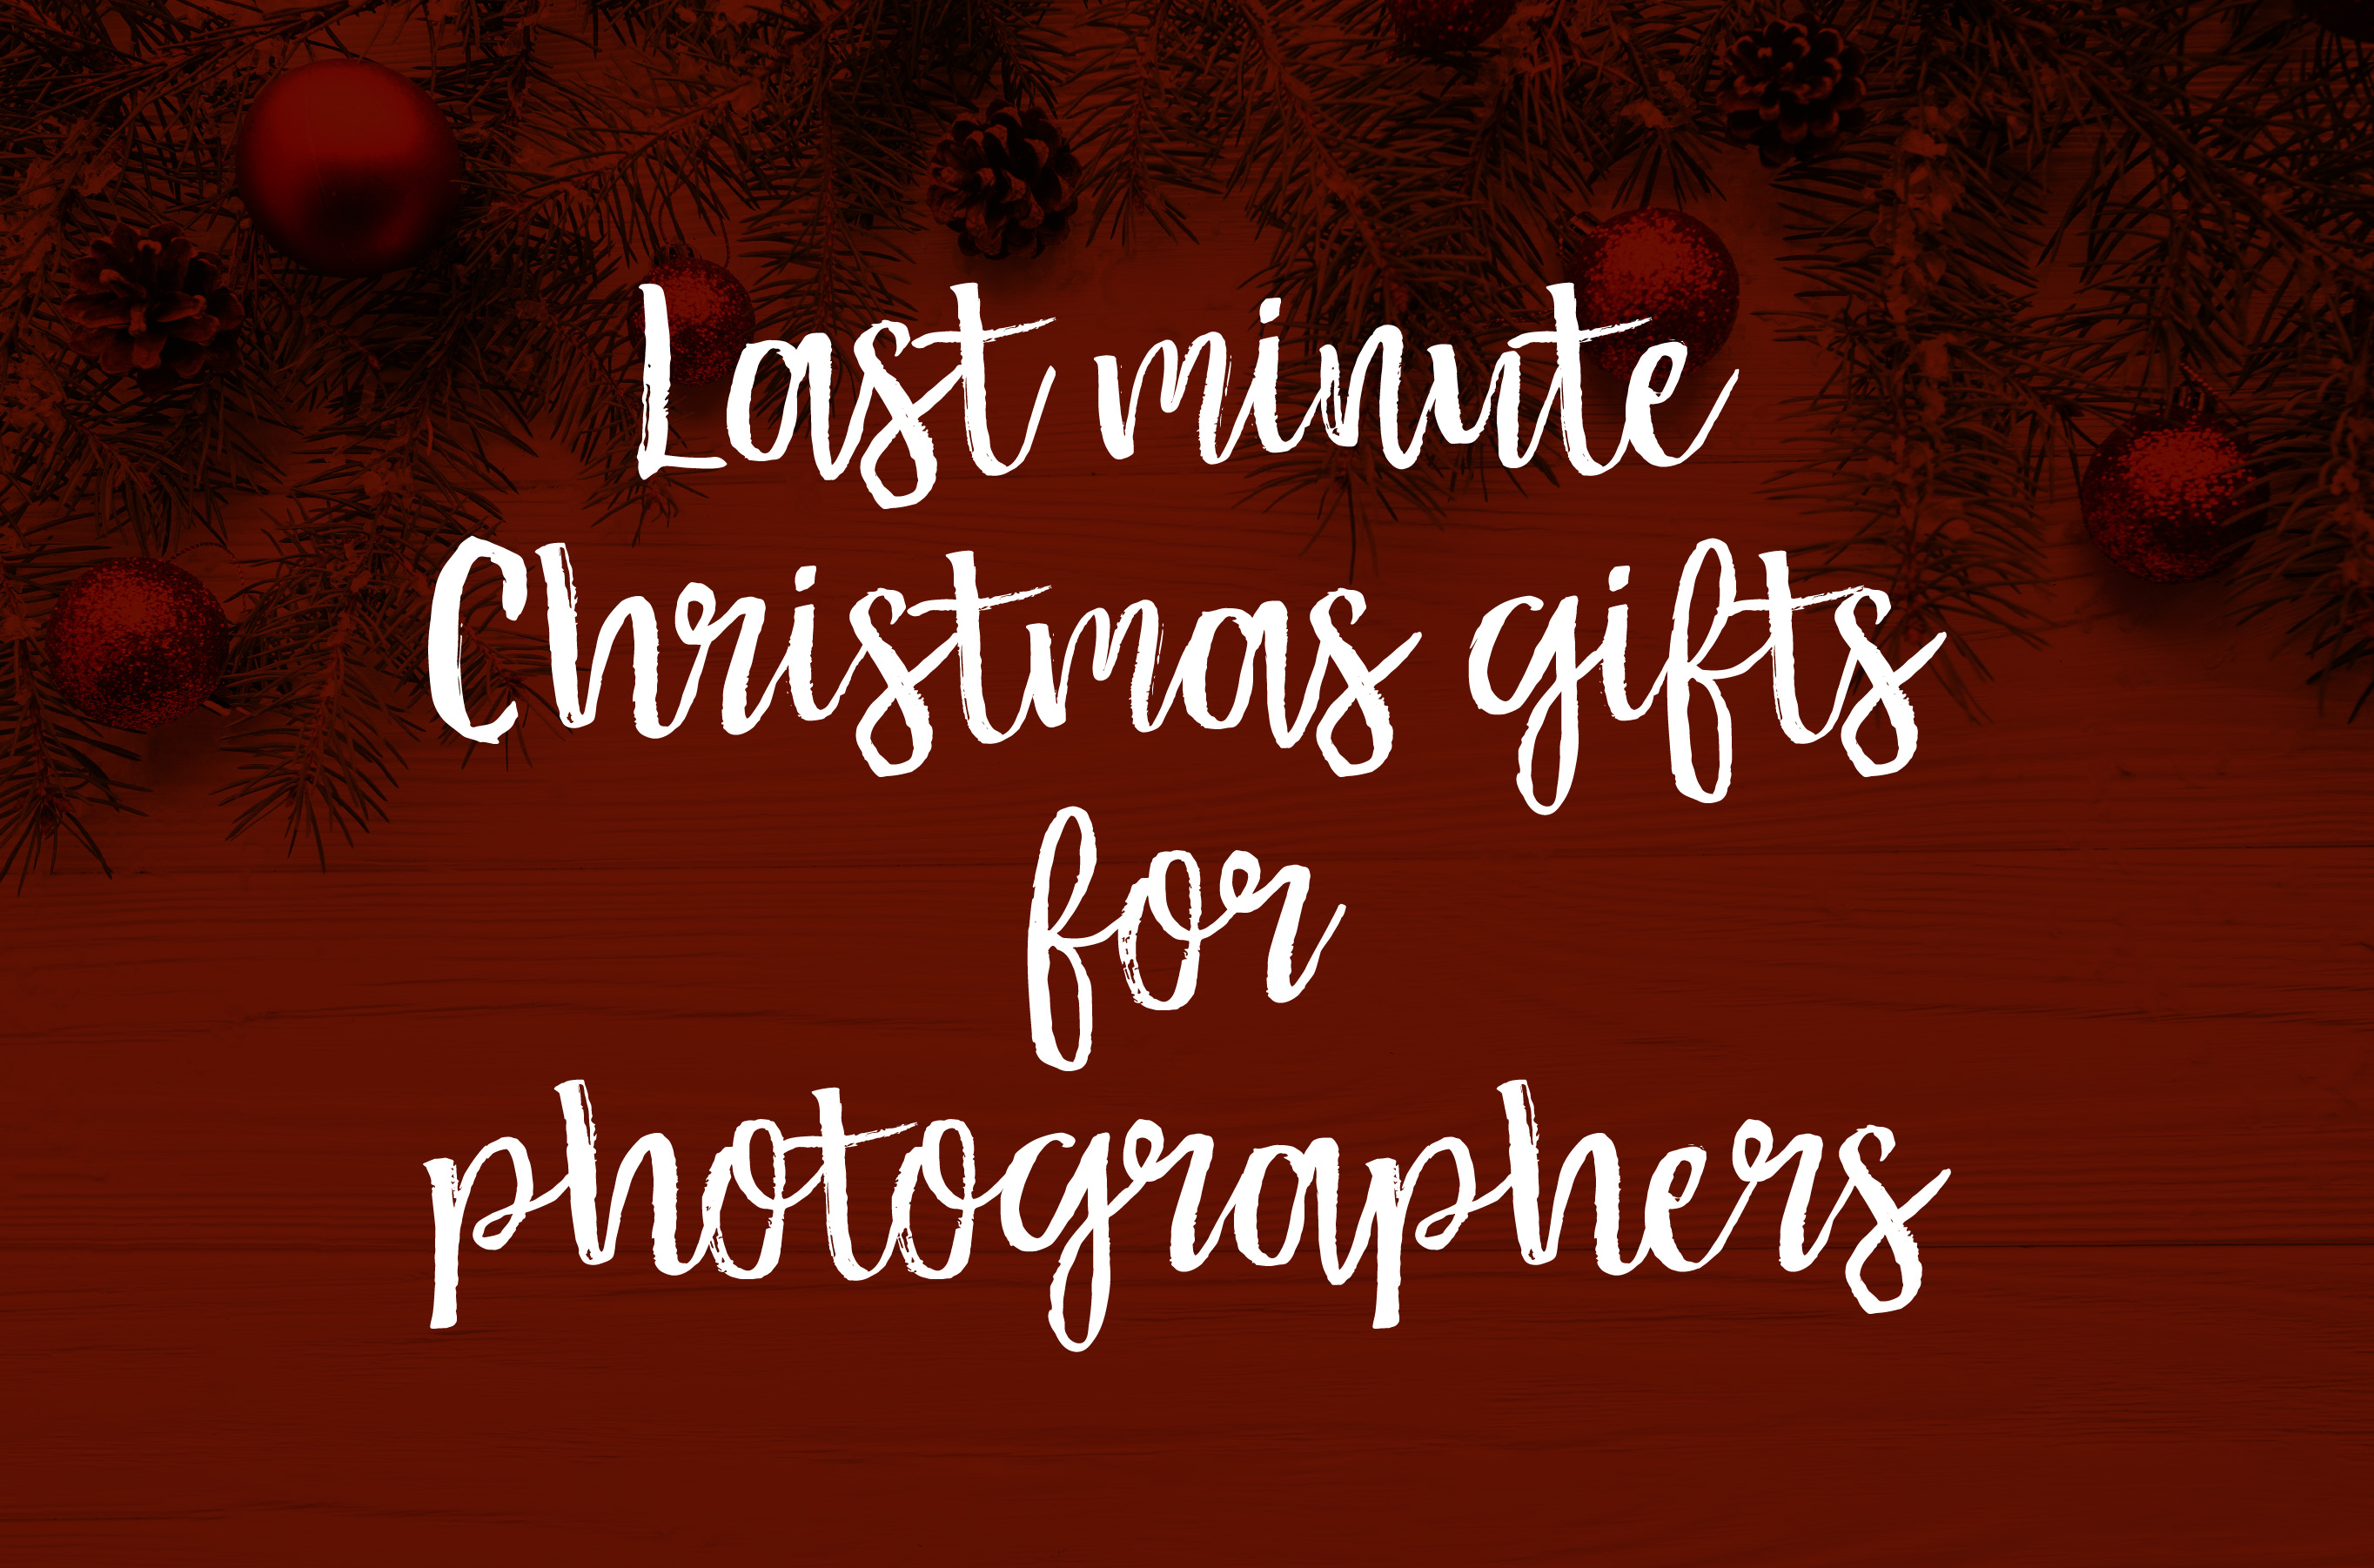 Last Minute Gifts for Photographers! 🎄